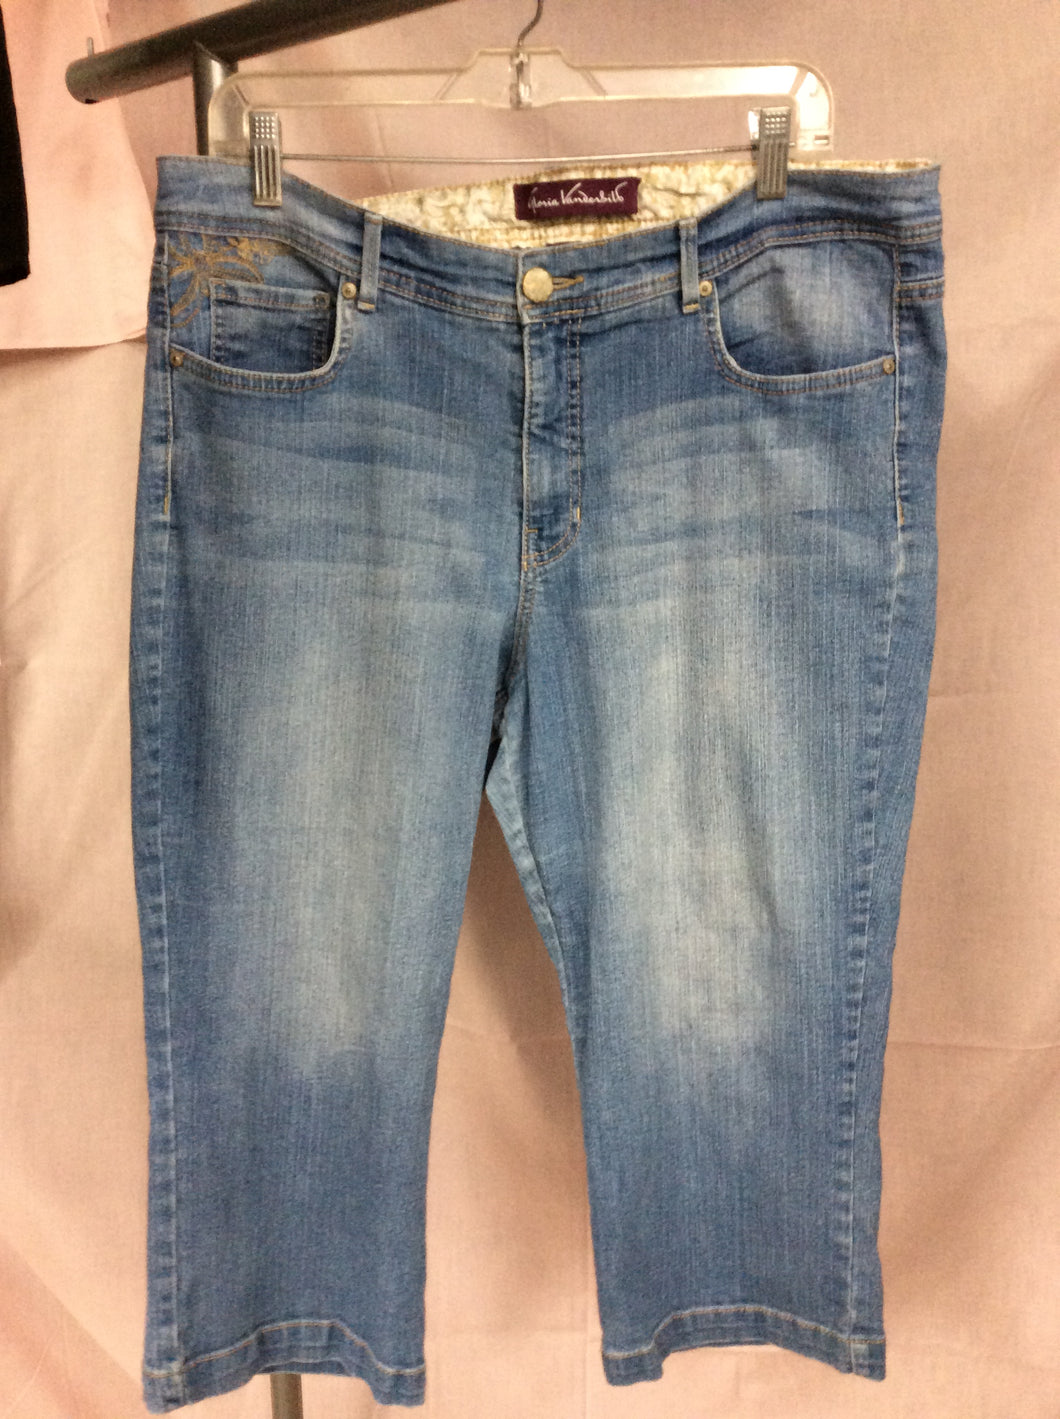 Gloria Vanderbelt Size 14 5 Pocket Embellishment Pedal Pusher Jeans